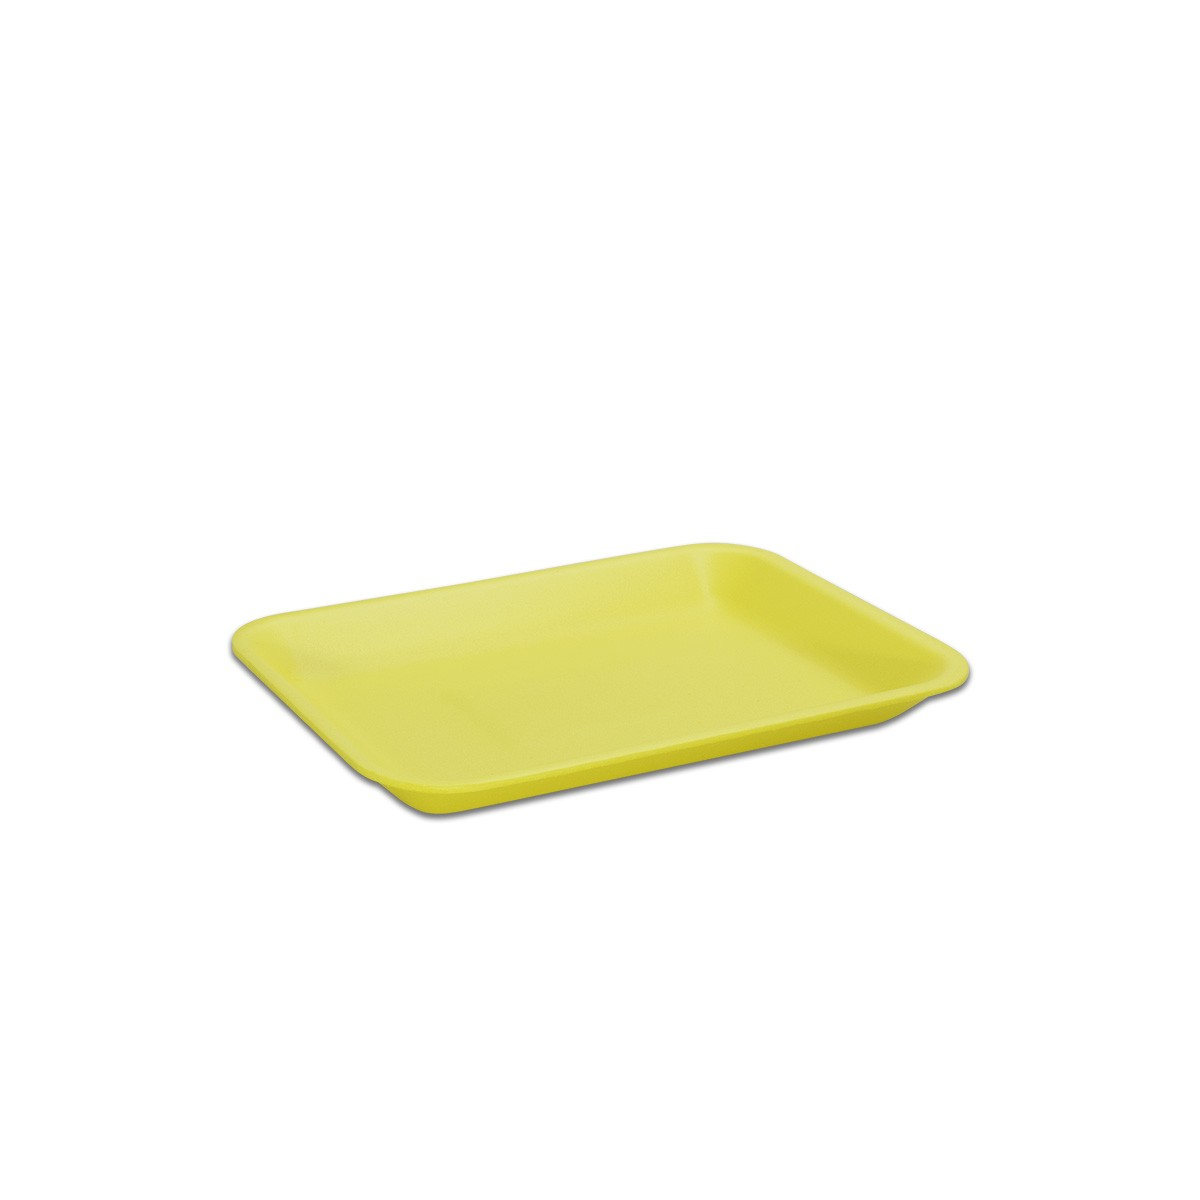 Foam Tray 216x152x20mm - Yellow | 500pcs